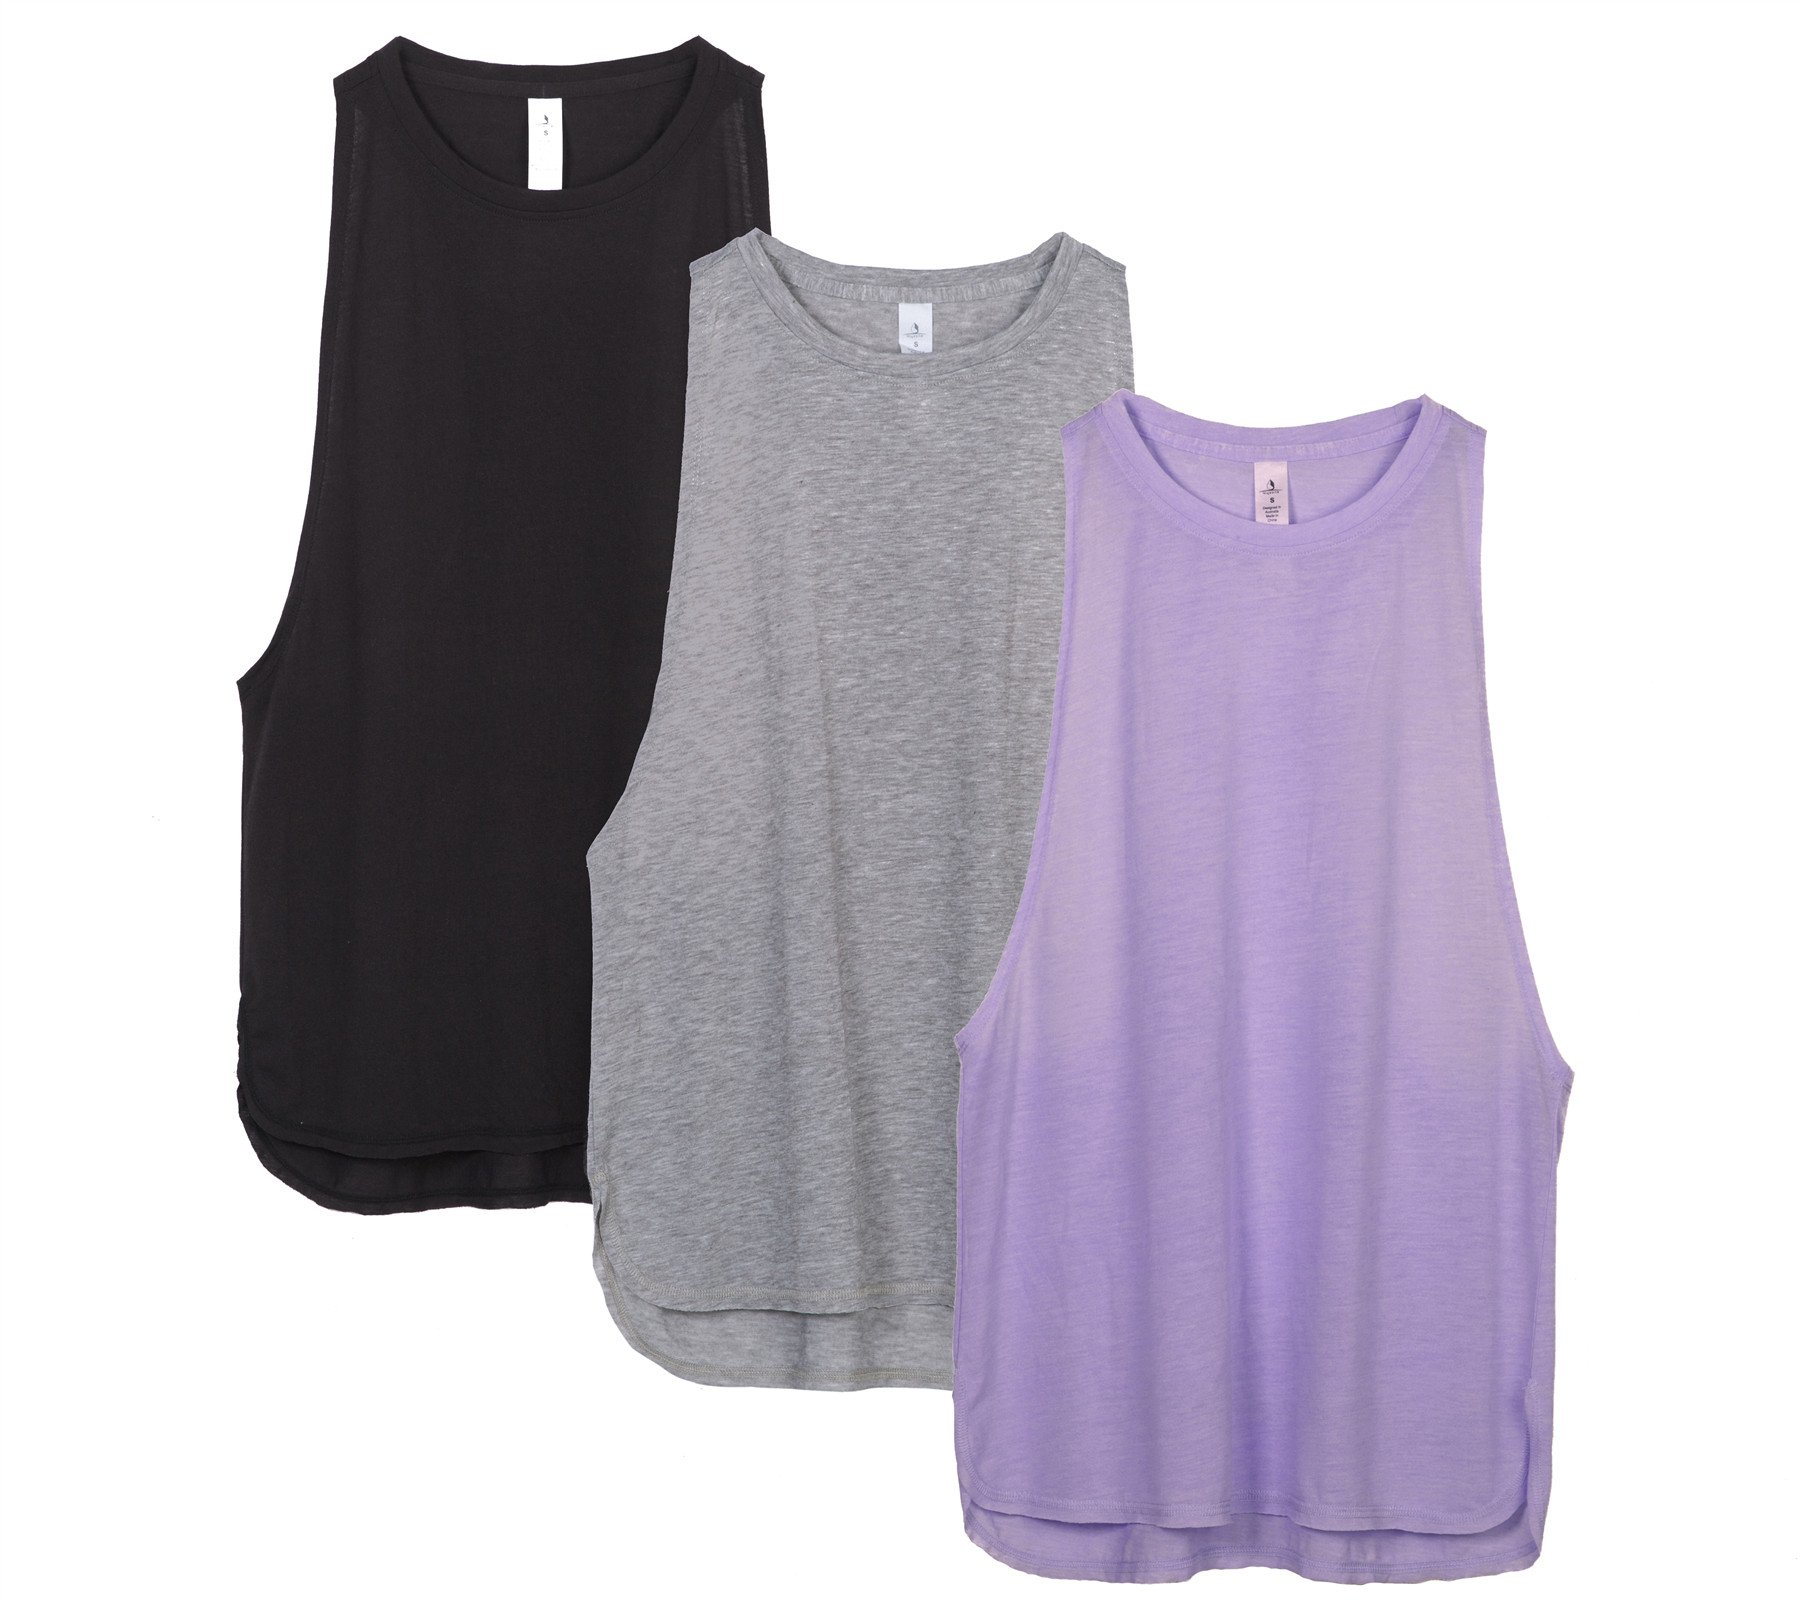 icyzone Workout Tank Tops for Women - Running Muscle Tank Sport Exercise Gym Yoga Tops Running Muscle Tanks(Pack of 3) (XS, Black/Grey/Lavender)